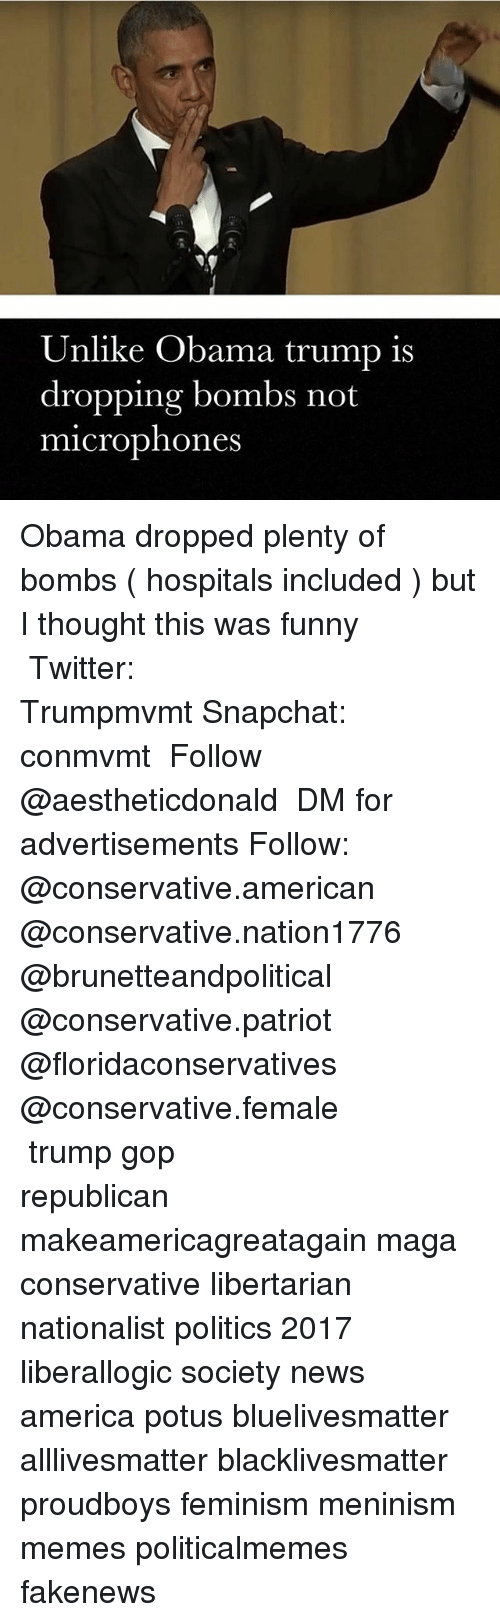 All Lives Matter, America, and Black Lives Matter: Unlike Obama trump is  dropping bombs not  microphones Obama dropped plenty of bombs ( hospitals included ) but I thought this was funny ━━━━━━━━━━━━━━━━━━━━━━━━━━ Twitter: Trumpmvmt Snapchat: conmvmt ★ Follow @aestheticdonald ★ DM for advertisements Follow: @conservative.american @conservative.nation1776 @brunetteandpolitical @conservative.patriot @floridaconservatives @conservative.female ━━━━━━━━━━━━━━━━━━━━━━━━━━ trump gop republican makeamericagreatagain maga conservative libertarian nationalist politics 2017 liberallogic society news america potus bluelivesmatter alllivesmatter blacklivesmatter proudboys feminism meninism memes politicalmemes fakenews